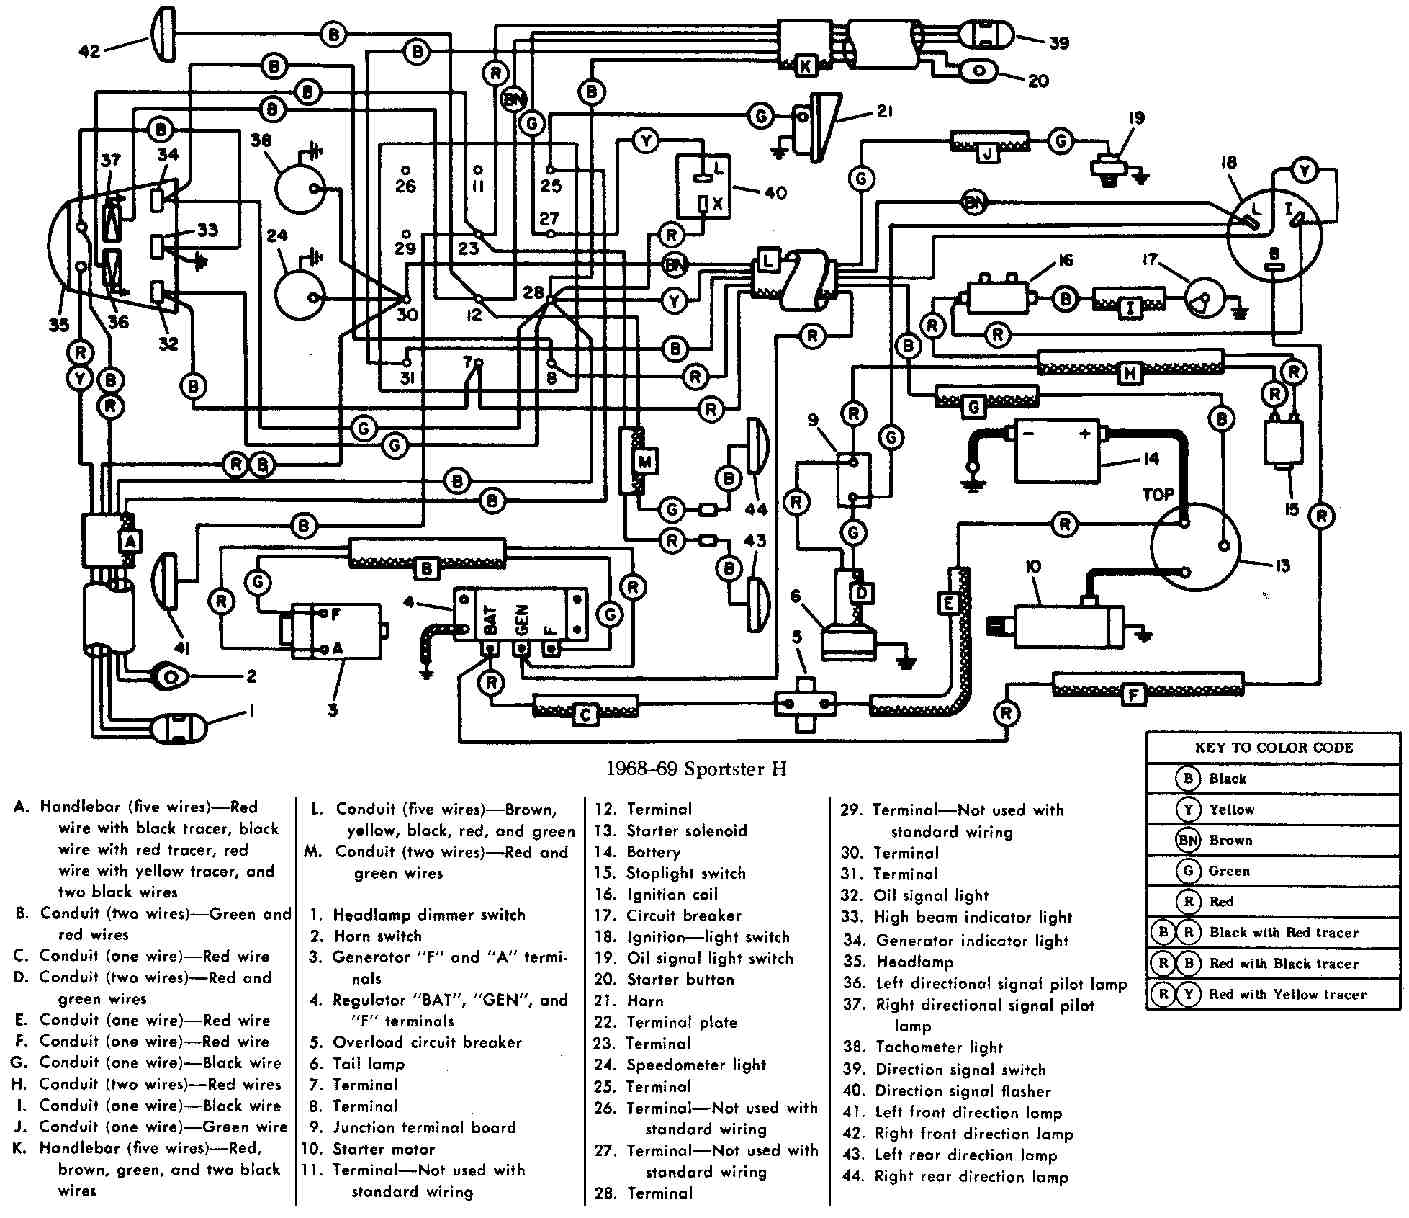 Harley Davidson Sportster 19681969 Electrical Wiring Diagram | All about Wiring Diagrams